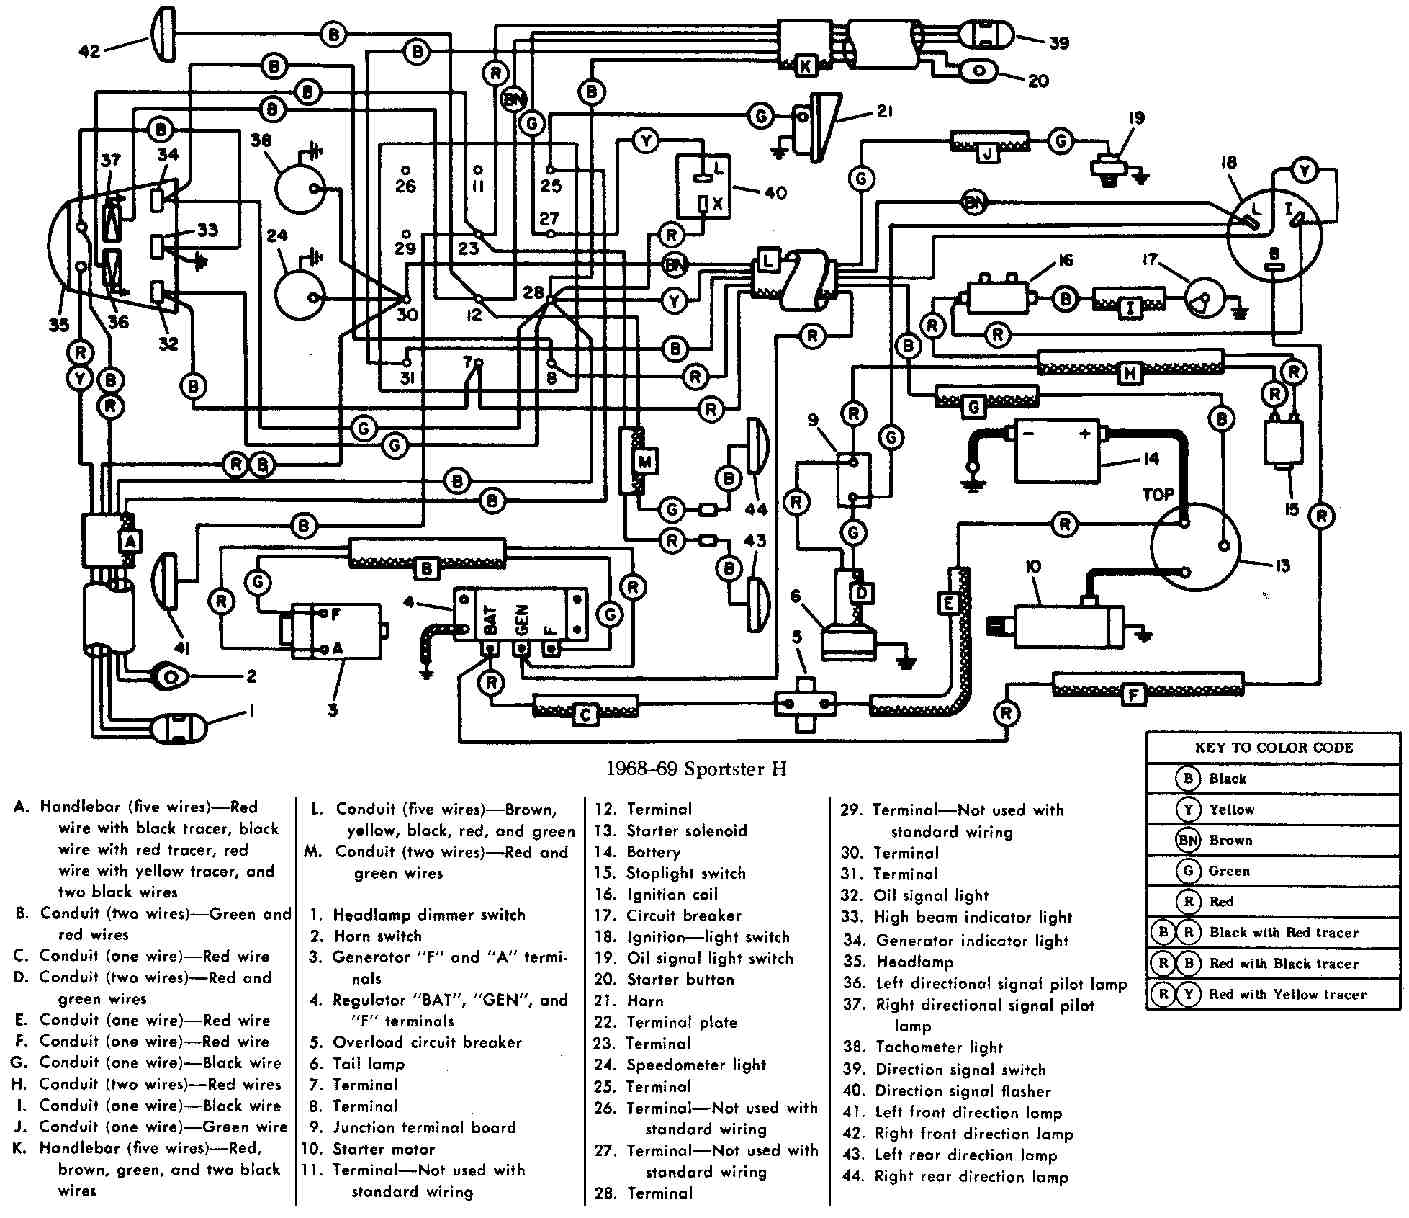 Harley Davidson Sportster 19681969 Electrical Wiring Diagram | All about Wiring Diagrams